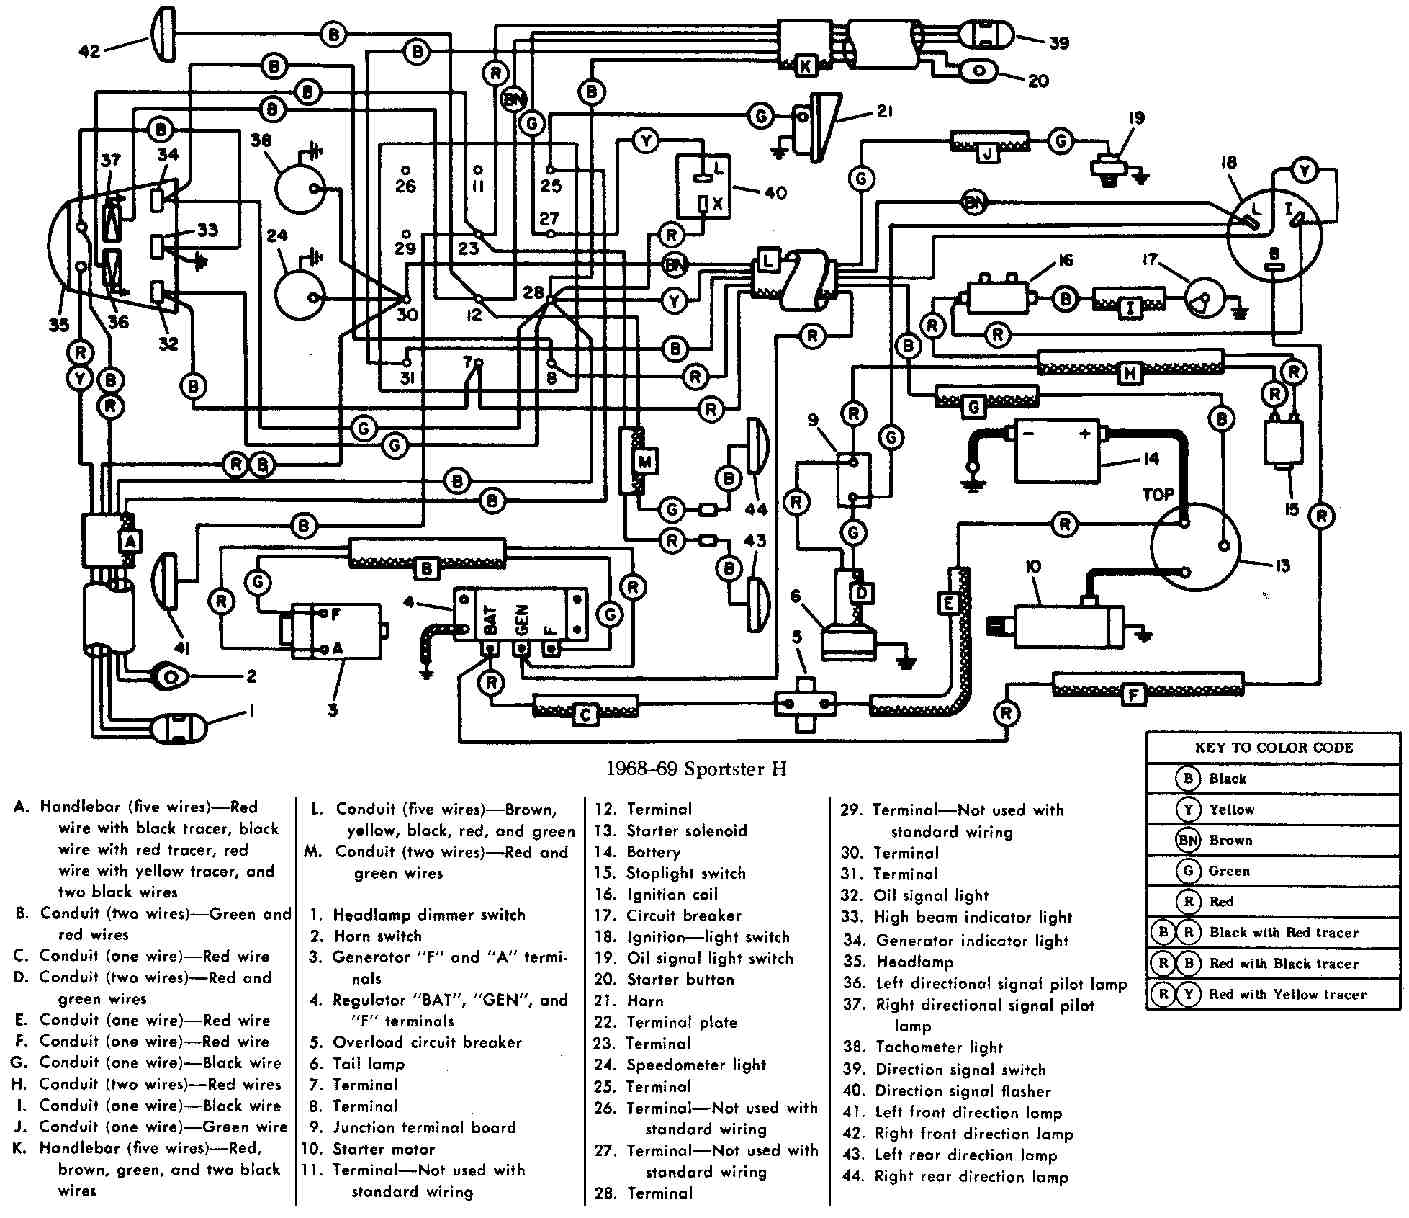 Harley Davidson Sportster 19681969 Electrical Wiring Diagram | All about Wiring Diagrams